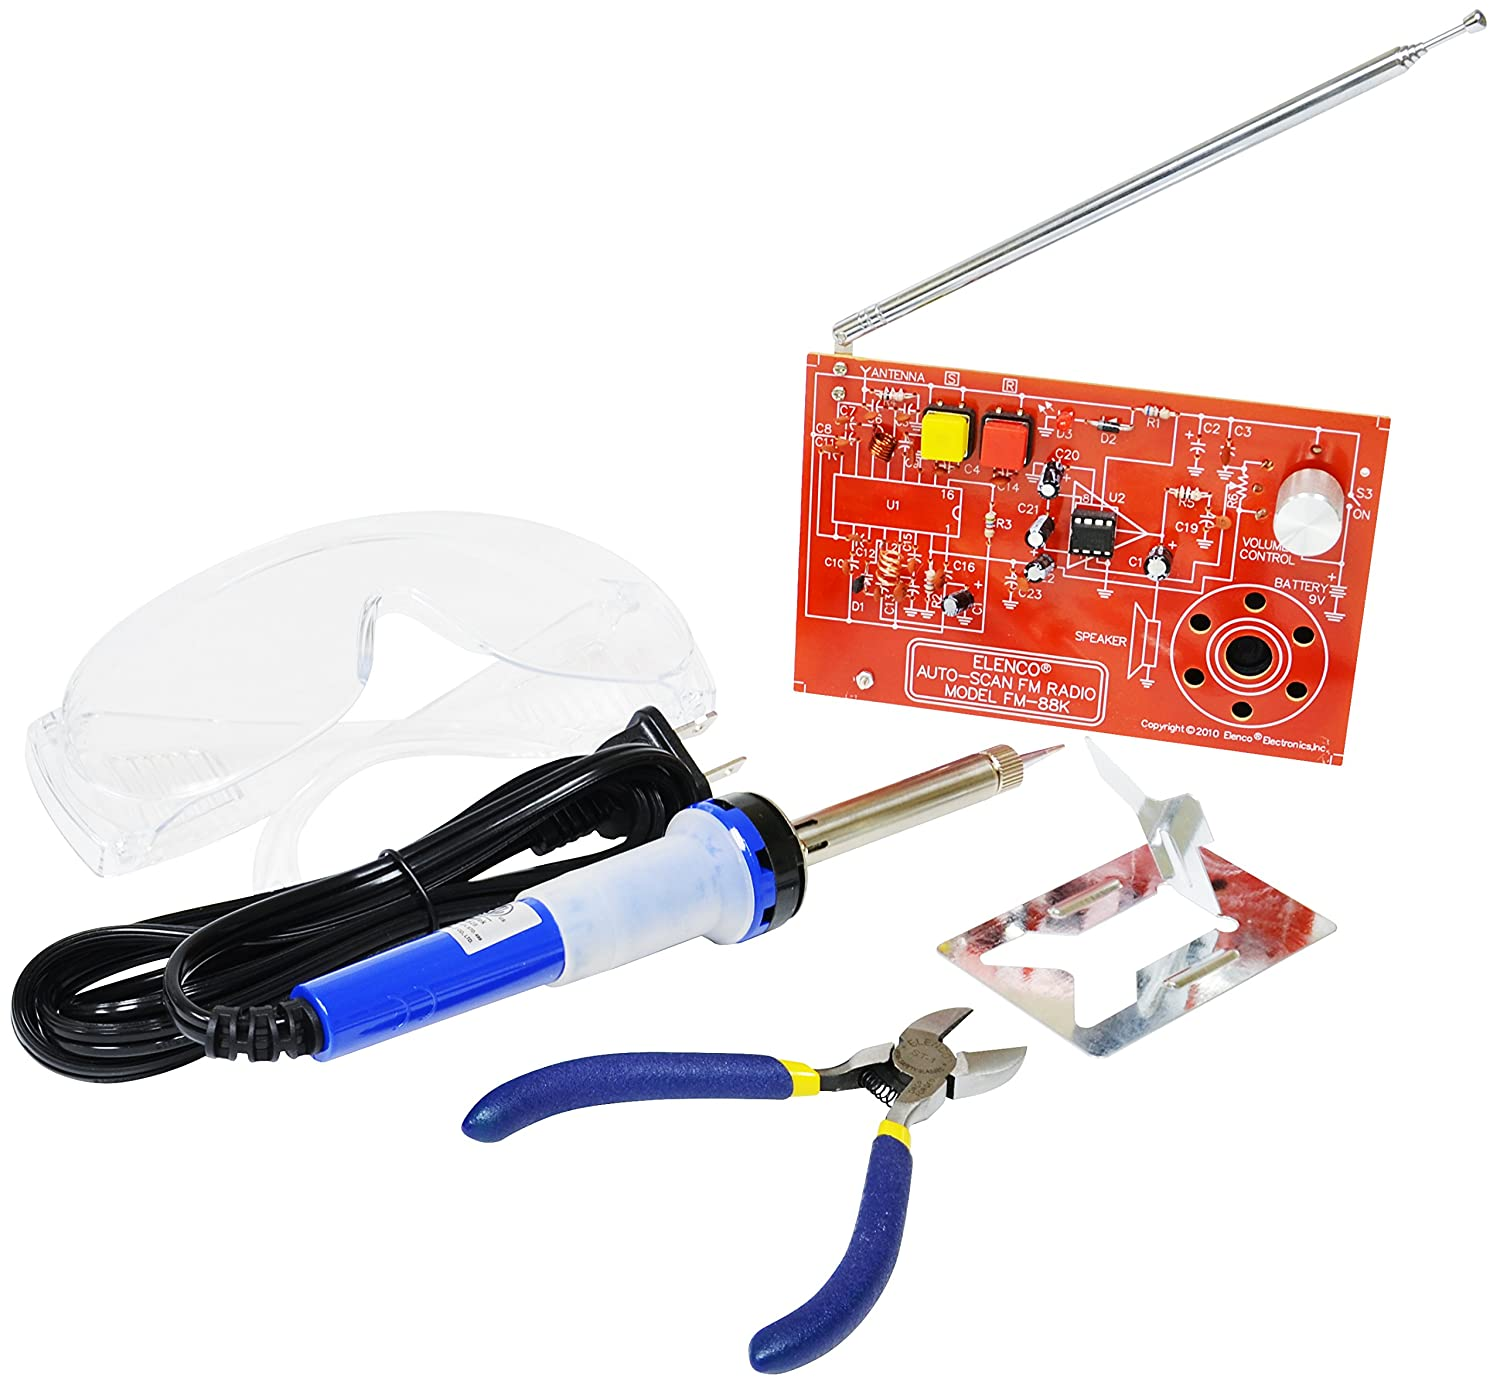 Wemake Fm Radio Soldering Kit With Tools Toys Games Details About Create Your Own Transistor Circuit Board